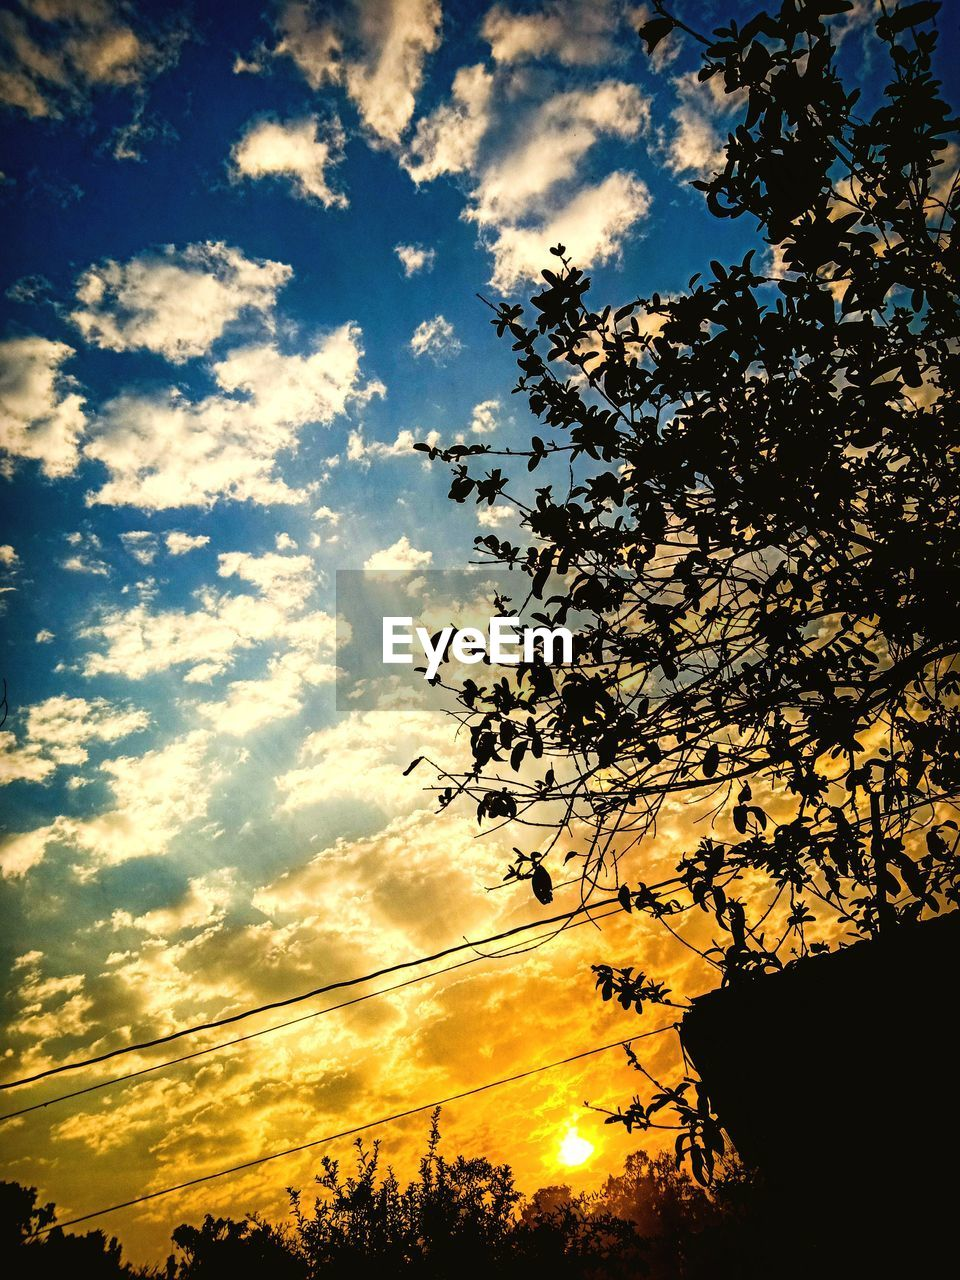 sky, cloud - sky, sunset, silhouette, beauty in nature, low angle view, tree, plant, nature, tranquility, no people, scenics - nature, orange color, sunlight, outdoors, tranquil scene, branch, idyllic, growth, yellow